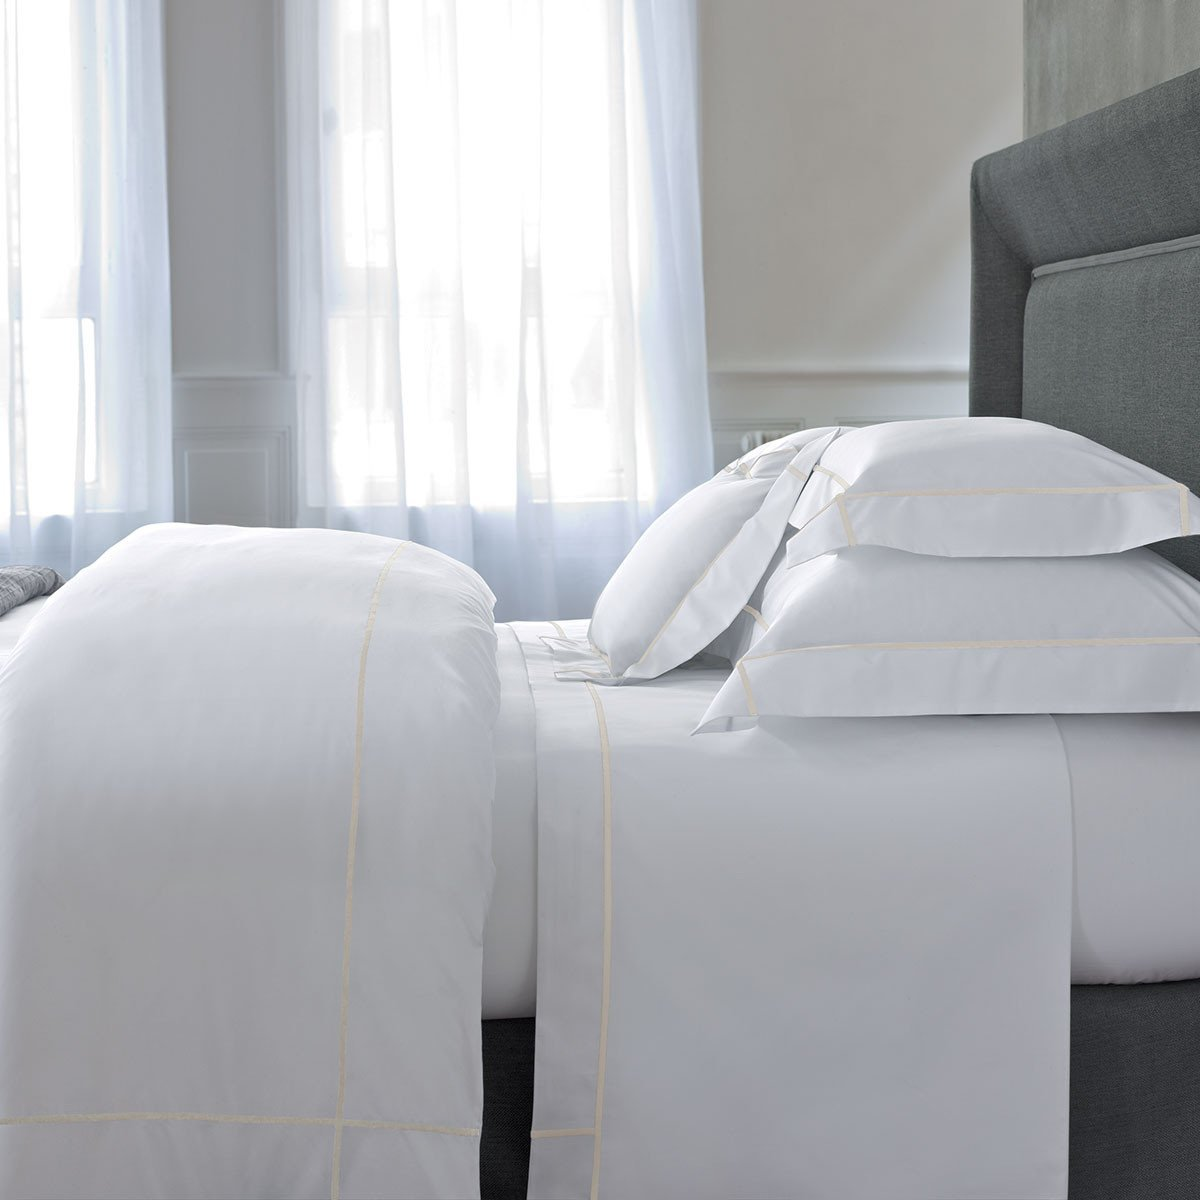 Athena Nacre Bedding Collection by Yves Delorme | Fig Linens - White and ivory bed linens